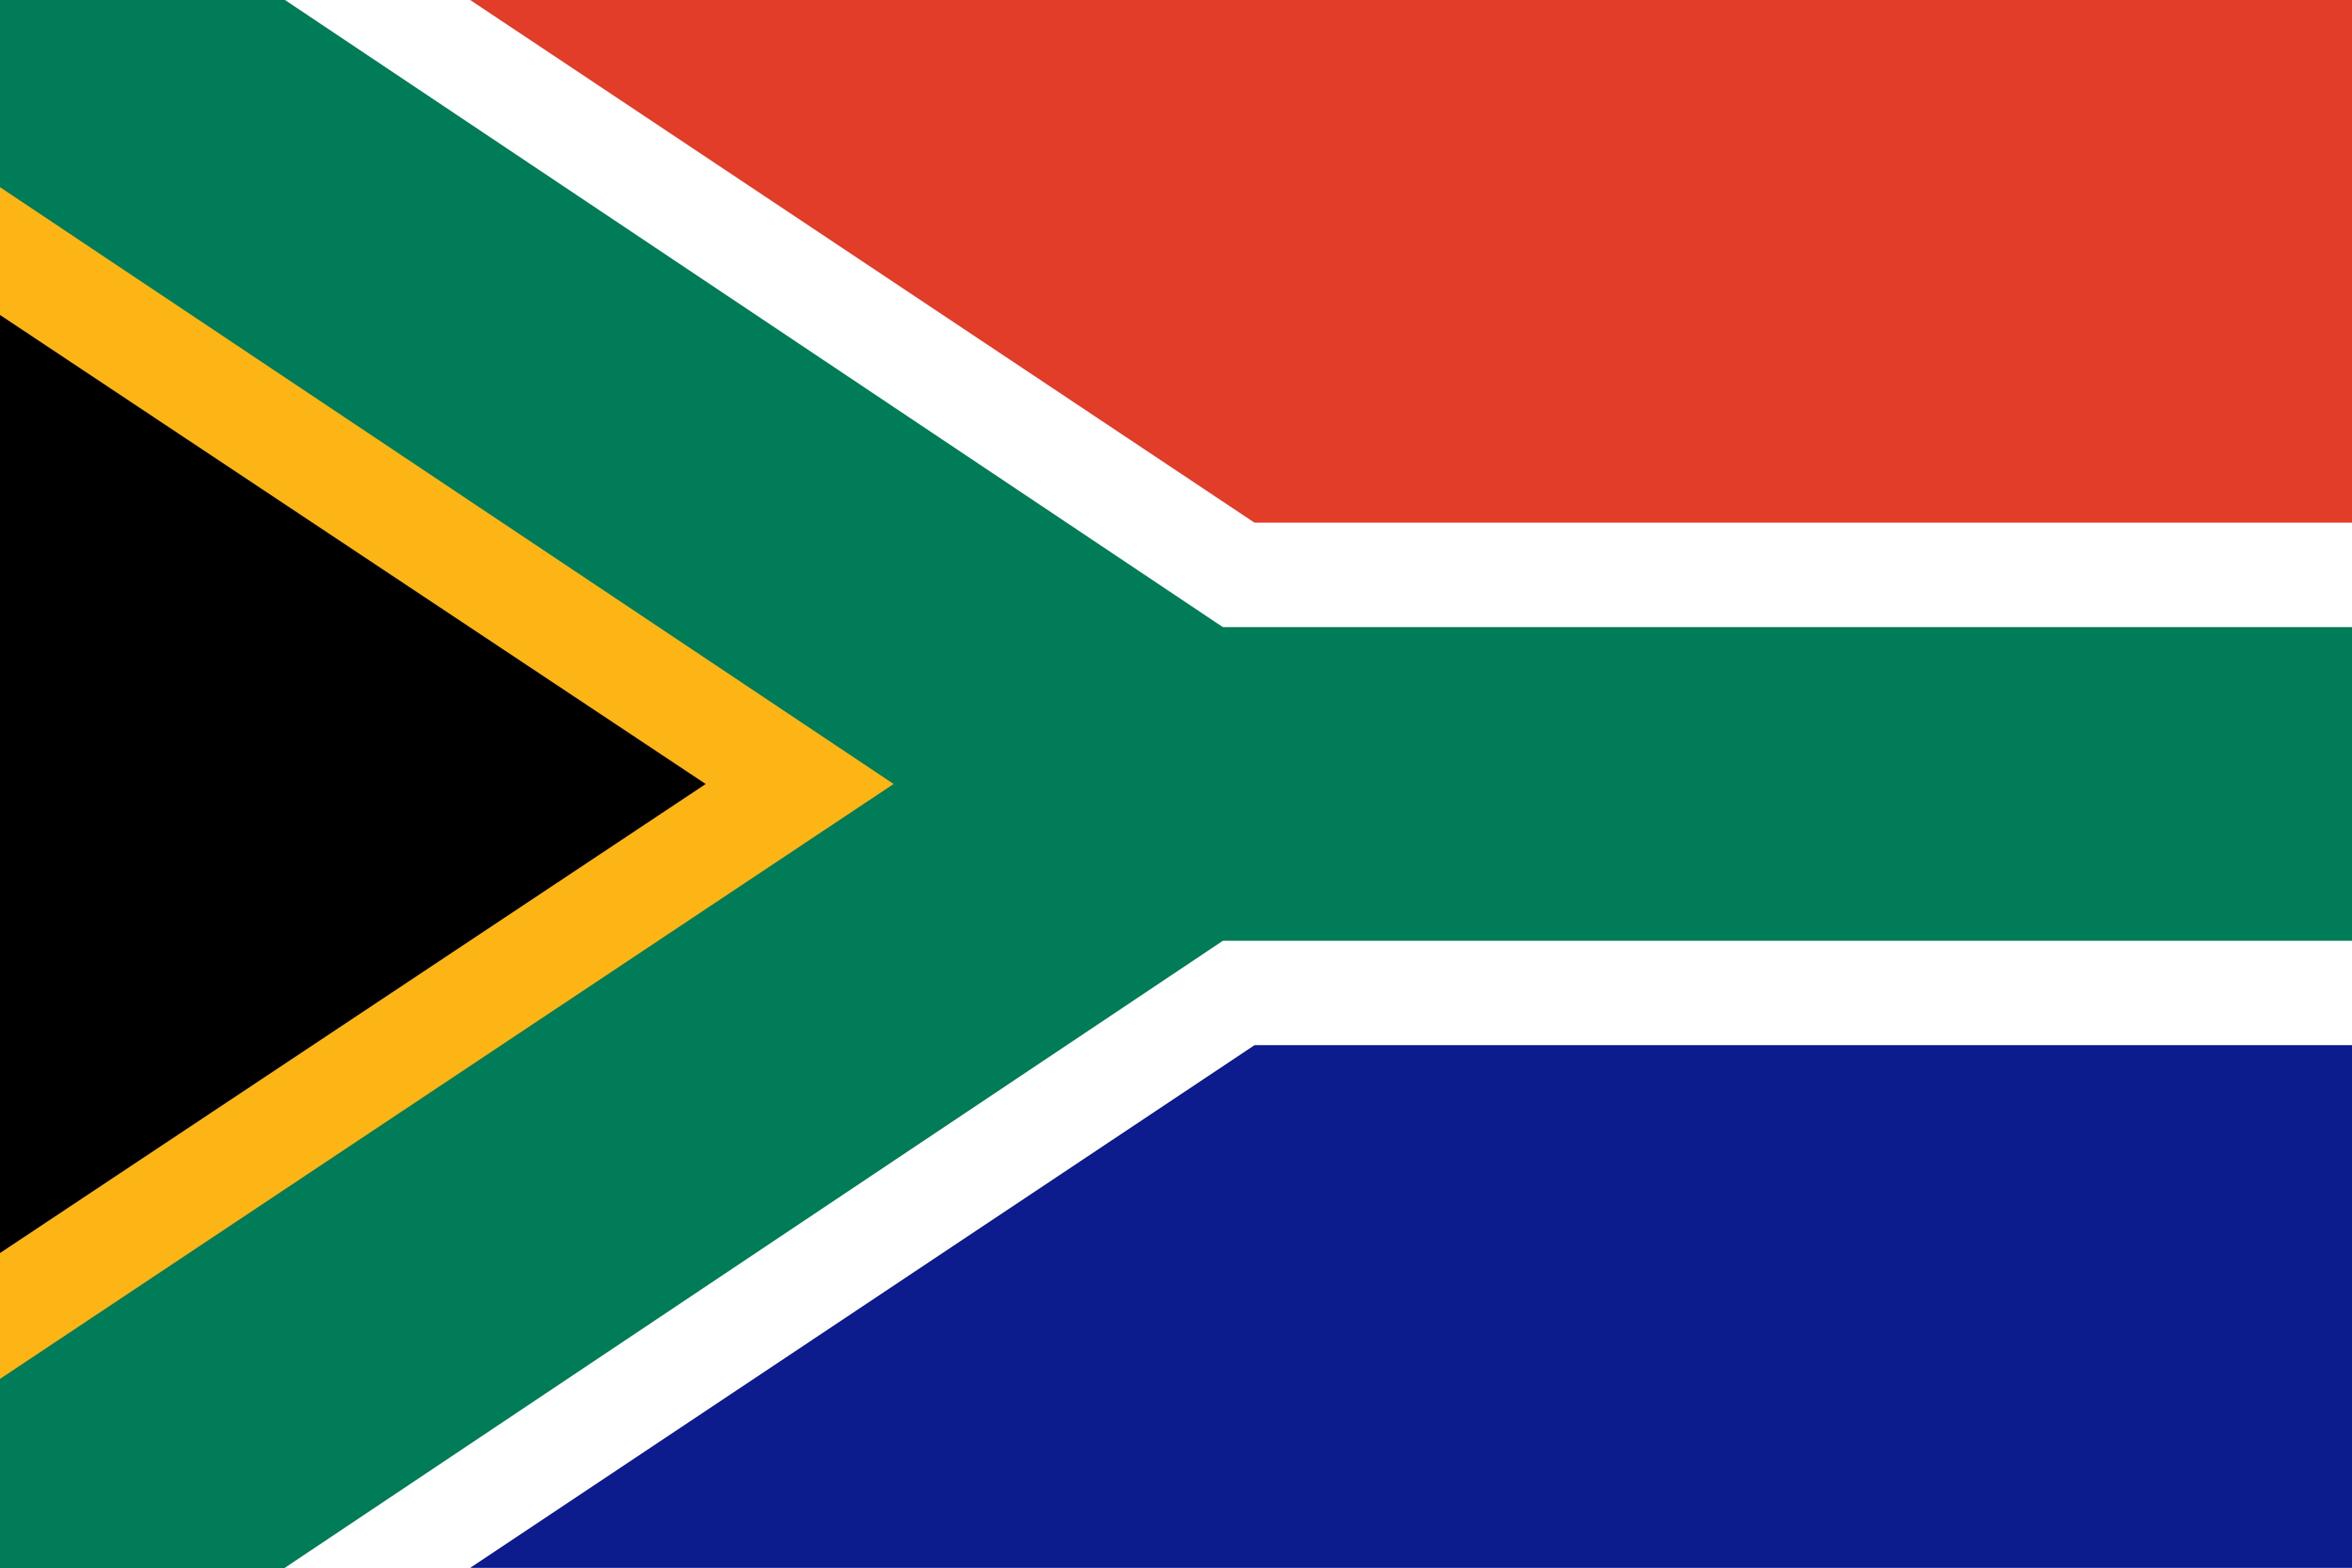 The National Flag of South Africa features two equal width horizontal bands of red (top) and blue (bottom) separated by a central green band that splits into a horizontal Y - the arms of which end at the corners of the flag's hoist side.